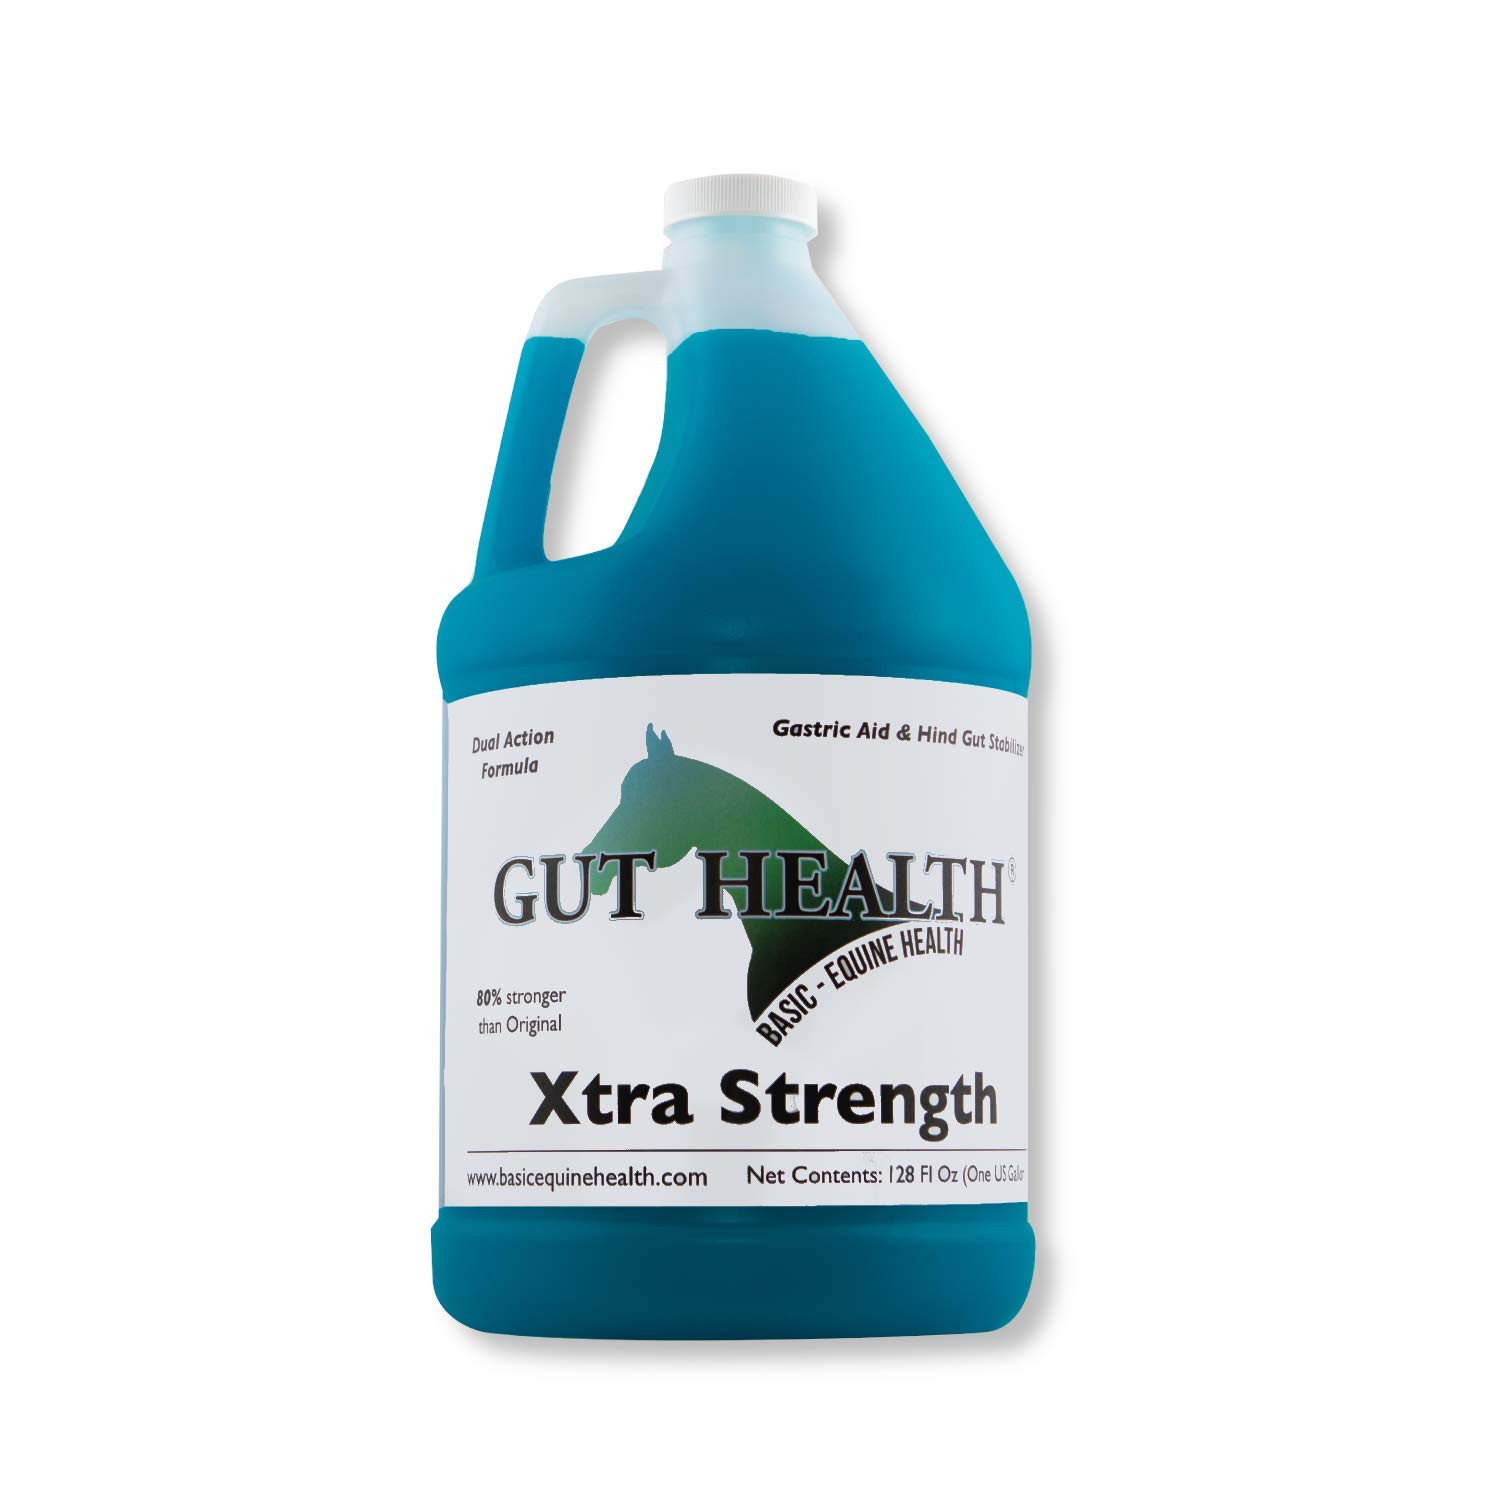 Gut Health Horse Feed Supplement - Xtra Strength Top Dress (1 Gallon) - Ulcer Aid for Horses That Promotes Improved Mood, Coat, Hoof Growth, and Weight Gain by Basic Equine Health